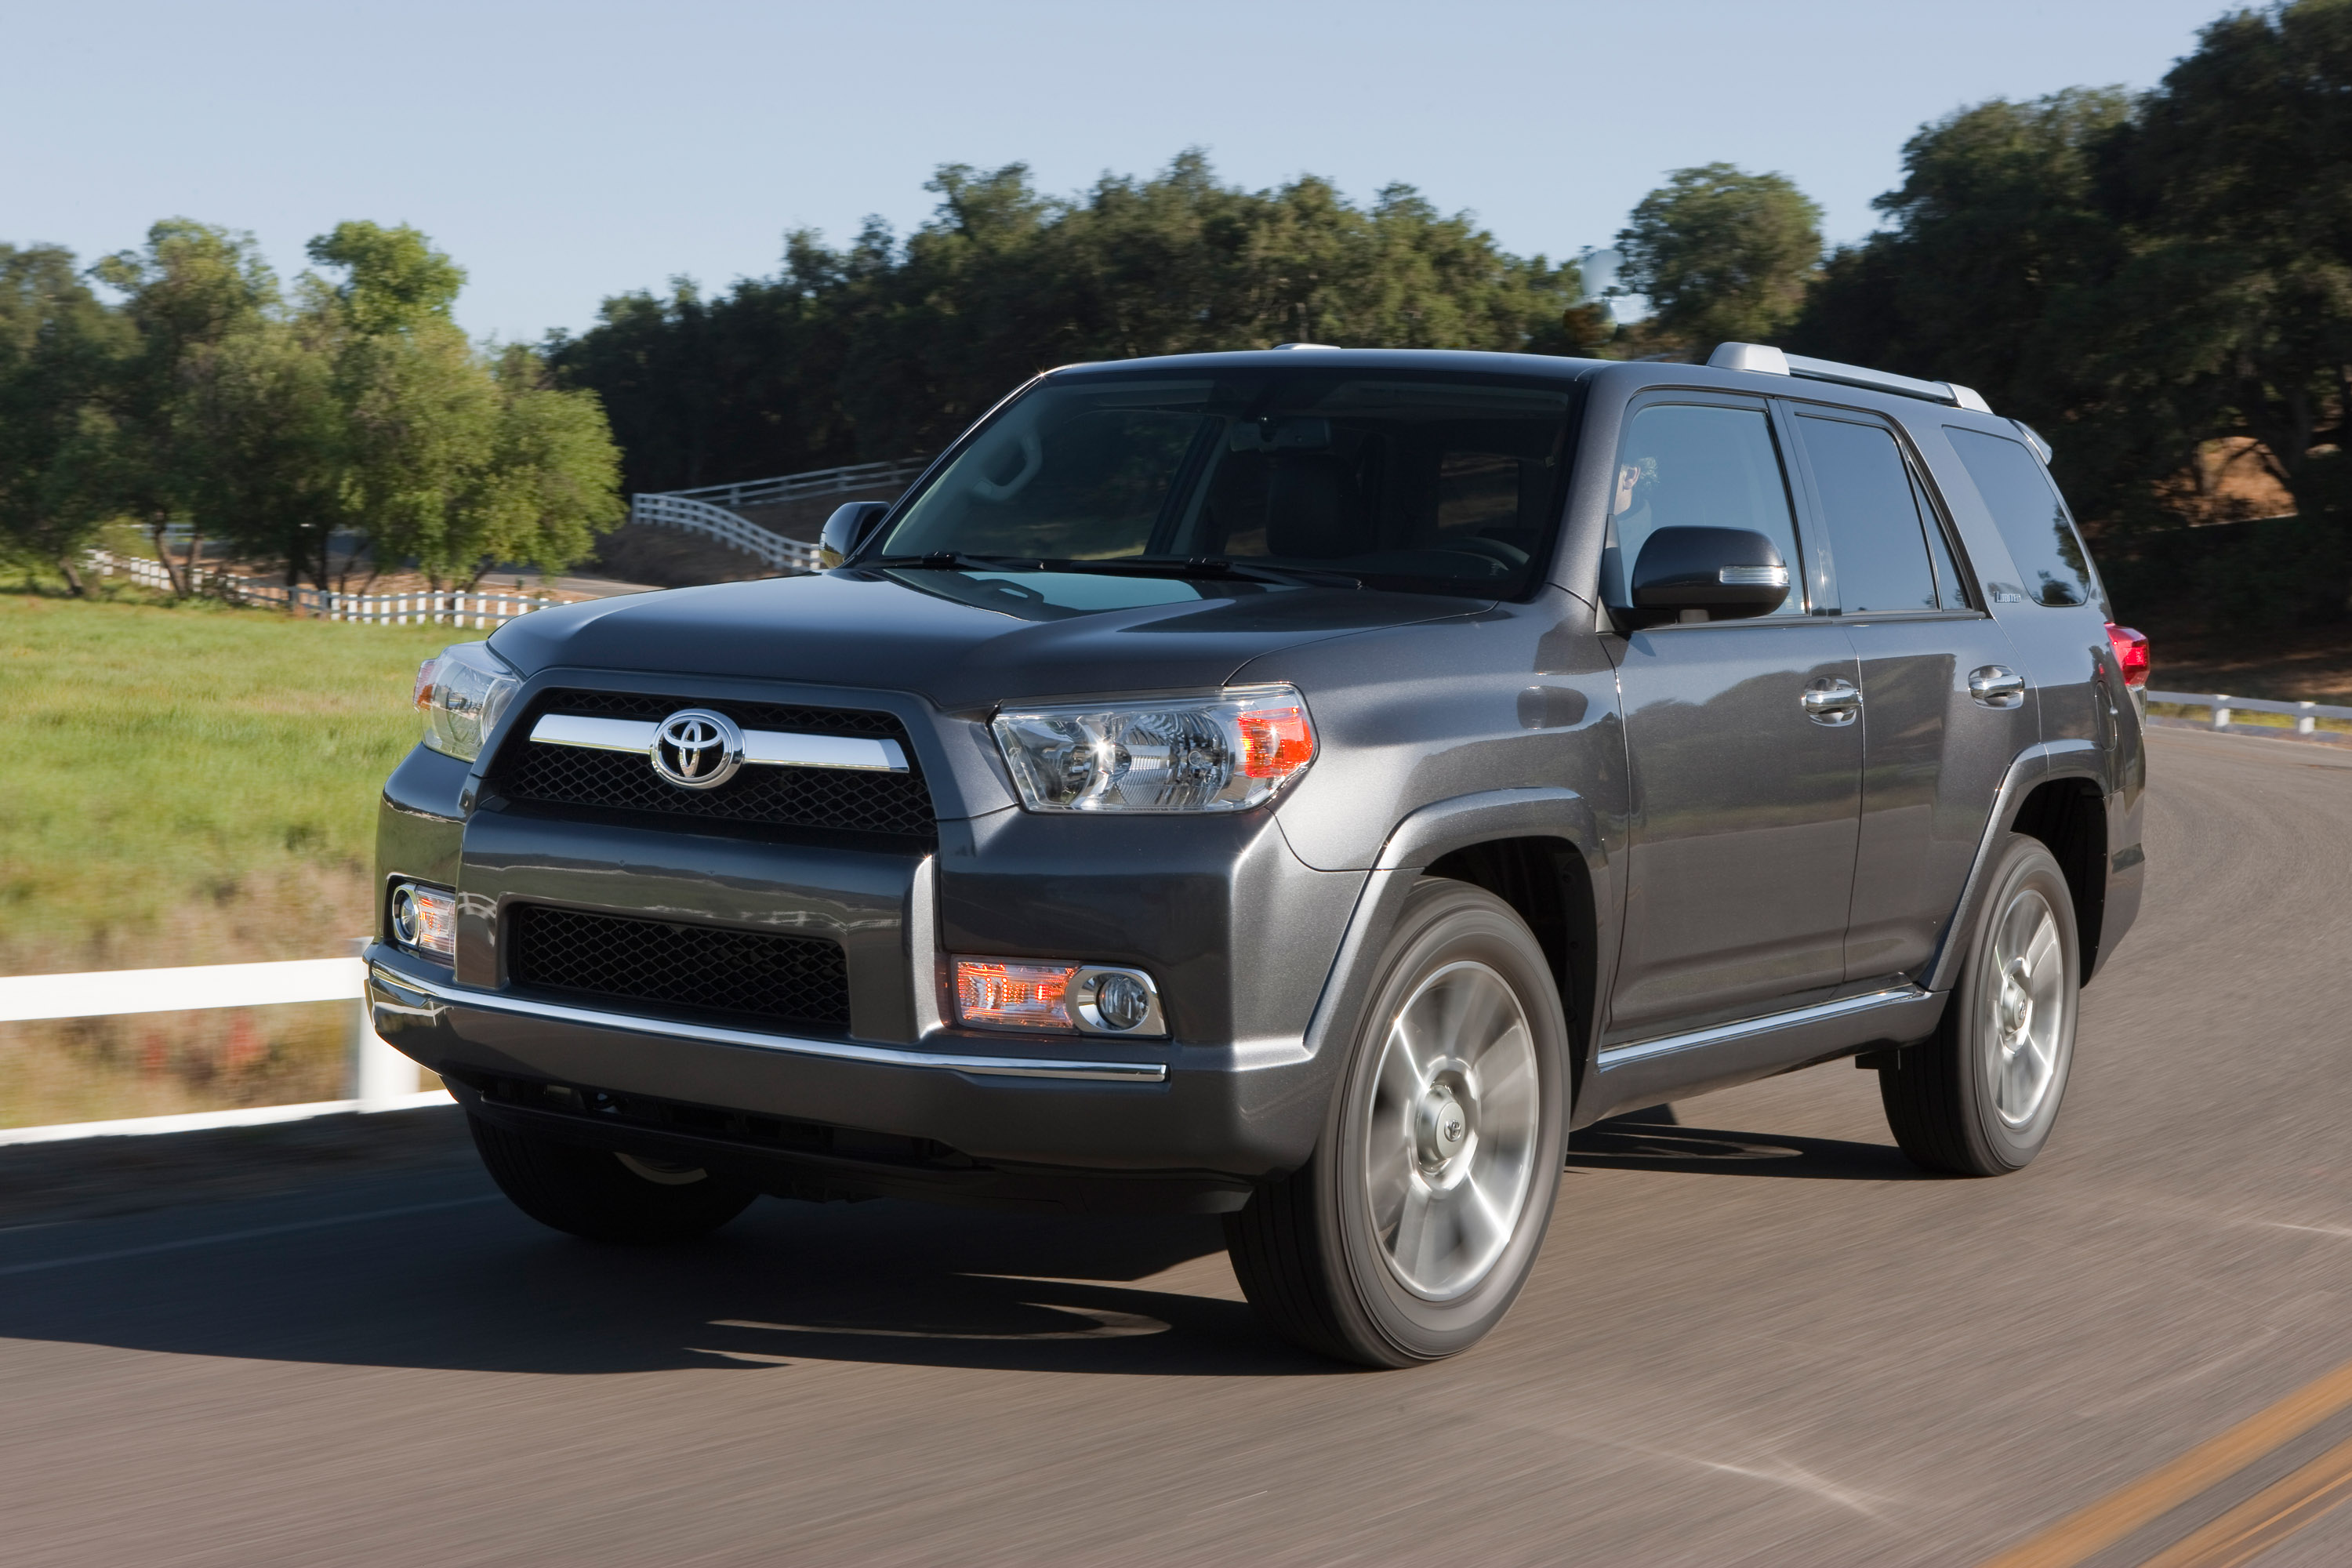 2010 Toyota 4Runner Limited - Picture 26583